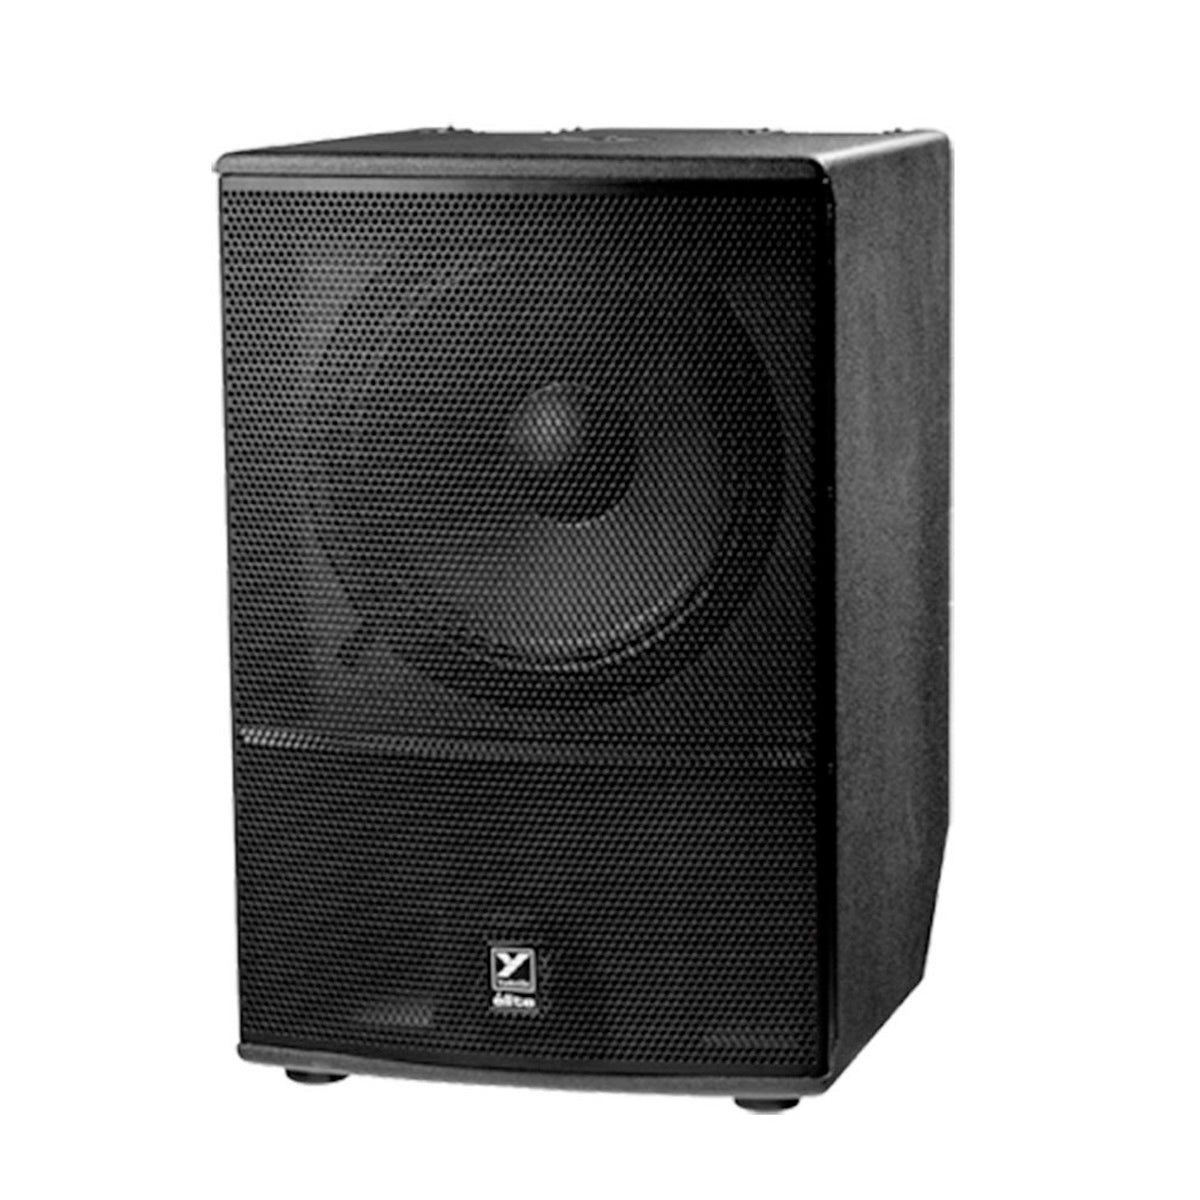 "Yorkville ES18P Elite 18"" 1600 Watt Active Subwoofer"